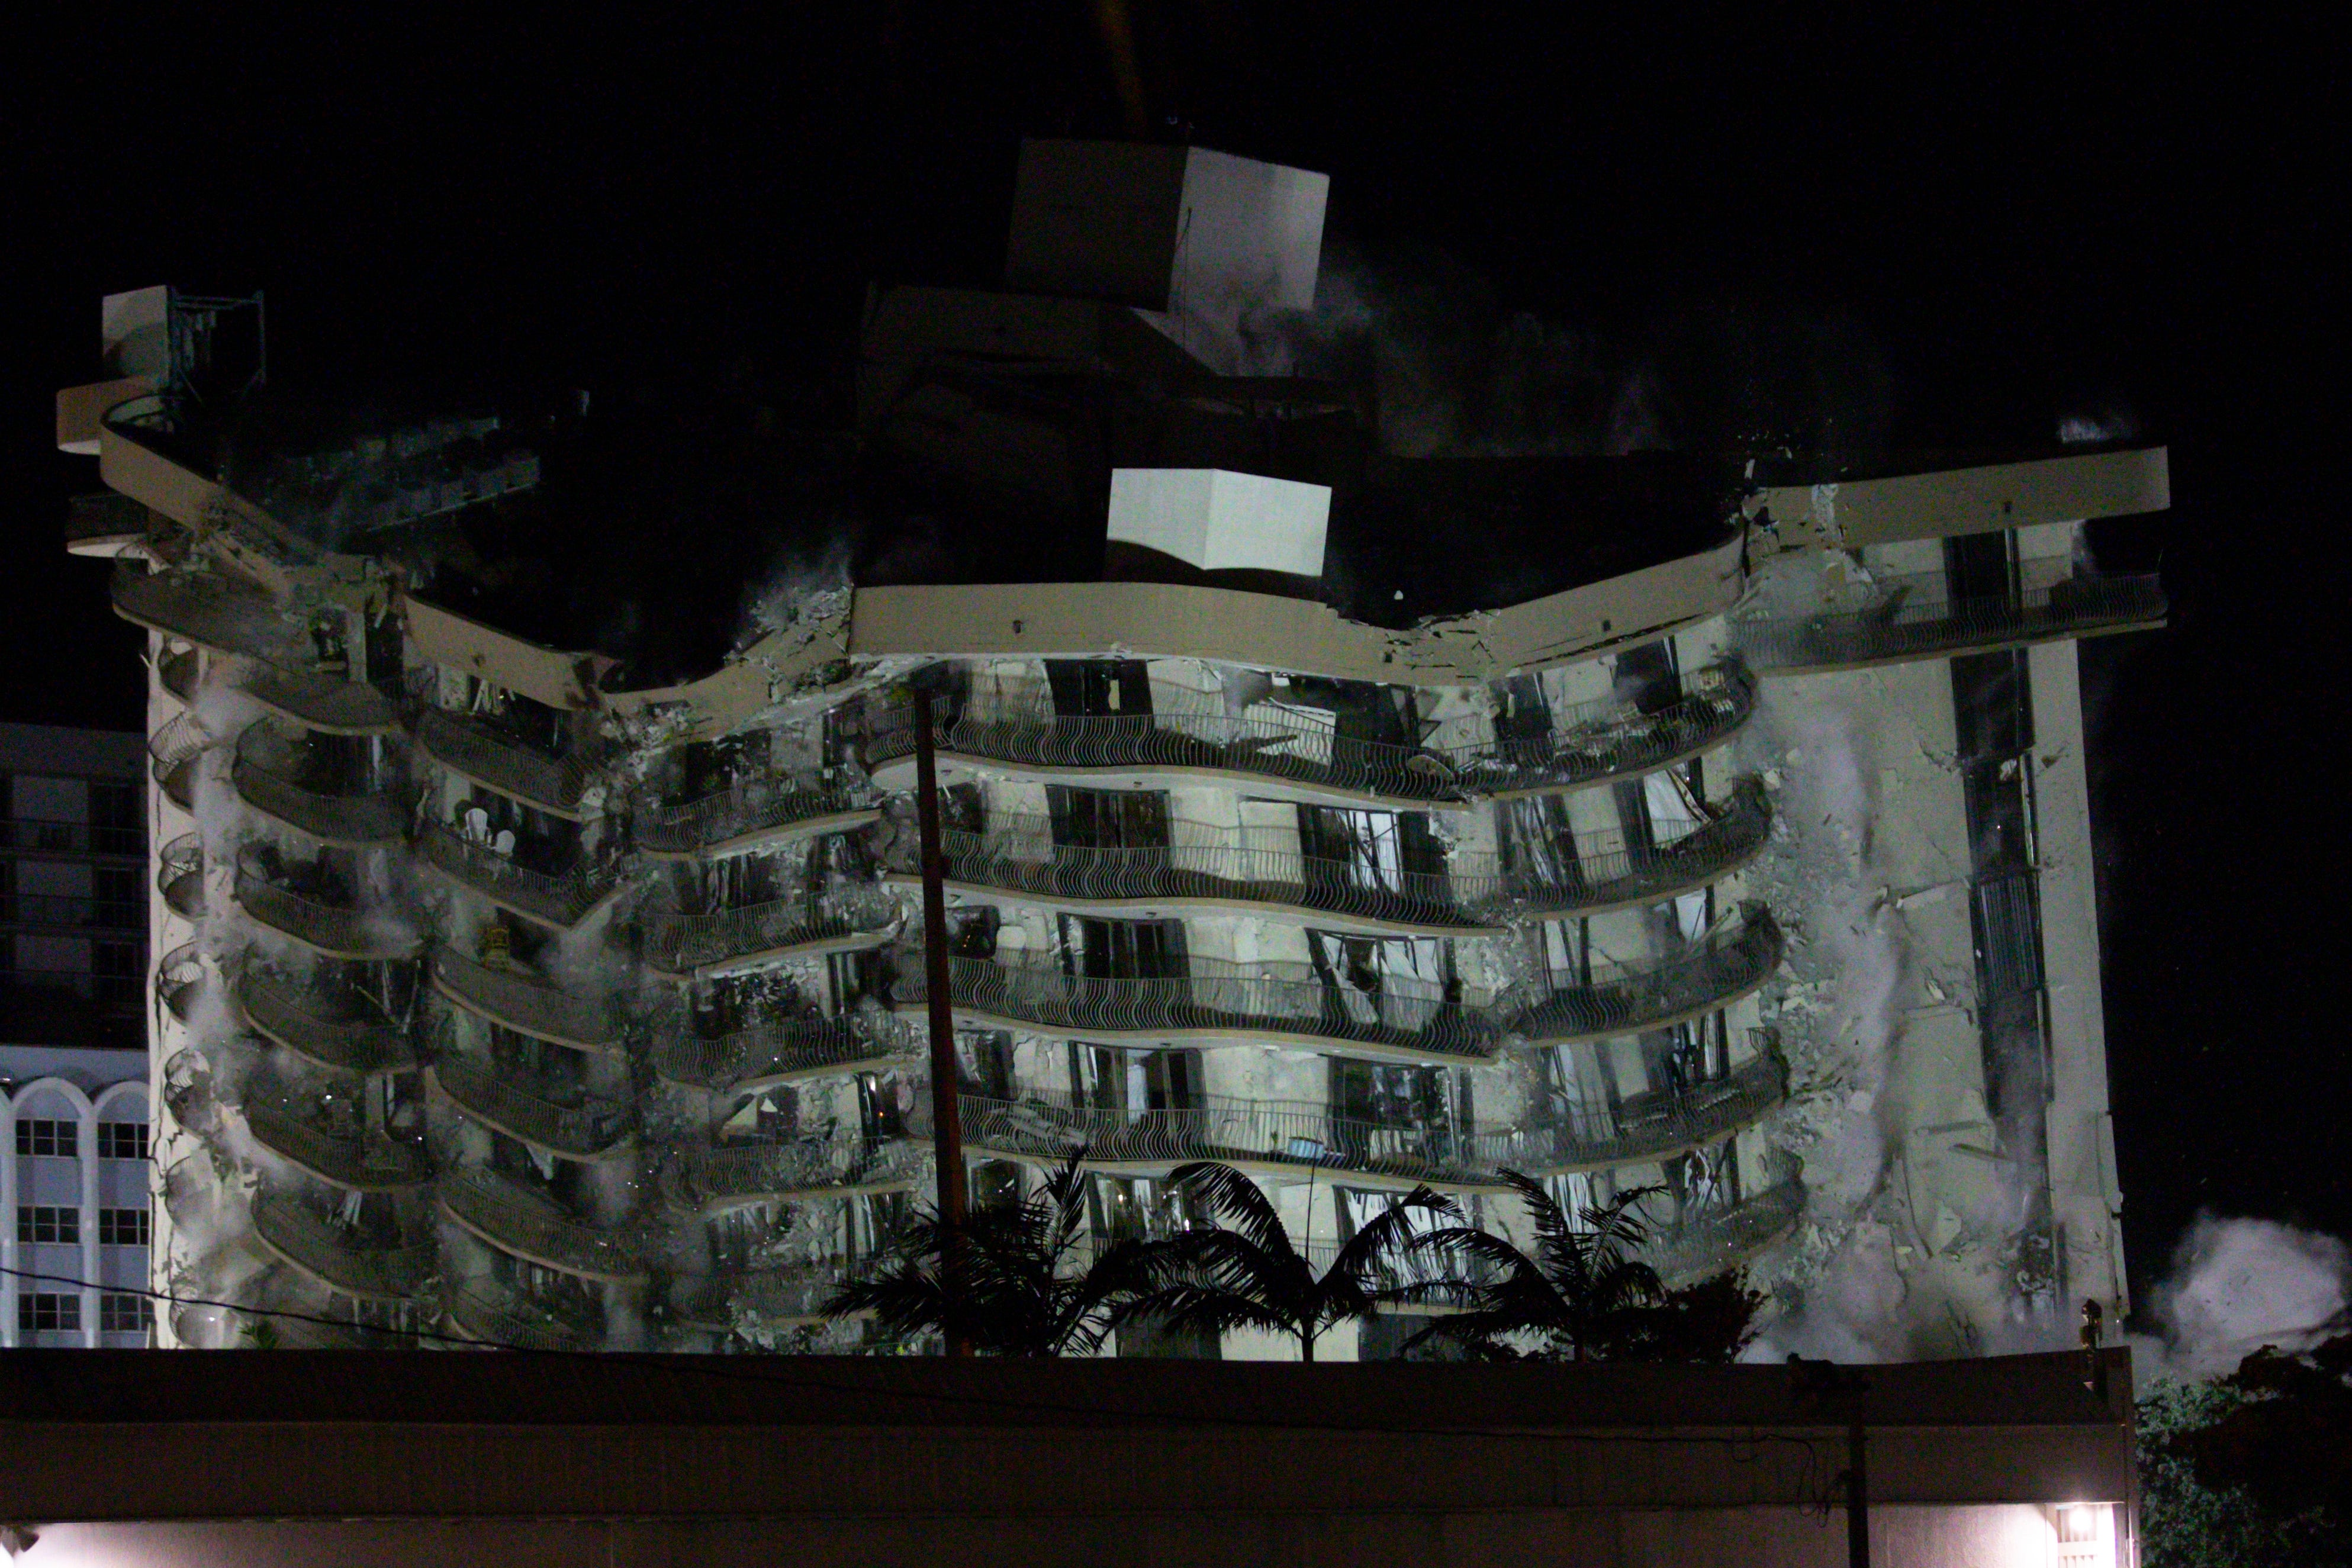 Demolition of Surfside, Florida condo near Miami that partially collapsed in June